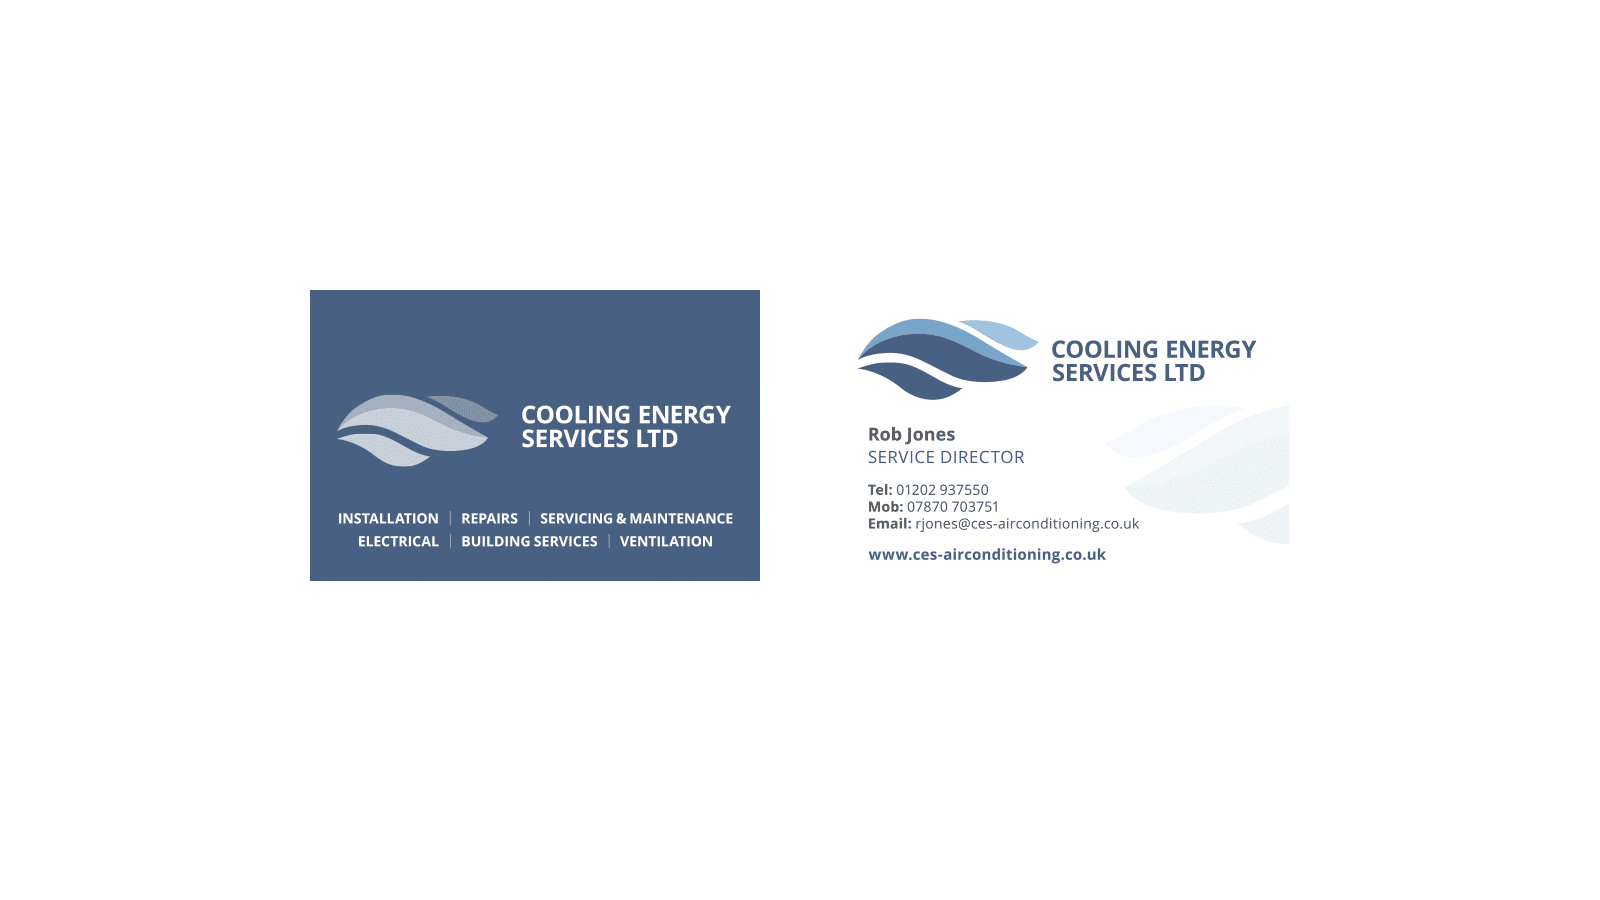 Cooling Energy Services Business Card designs